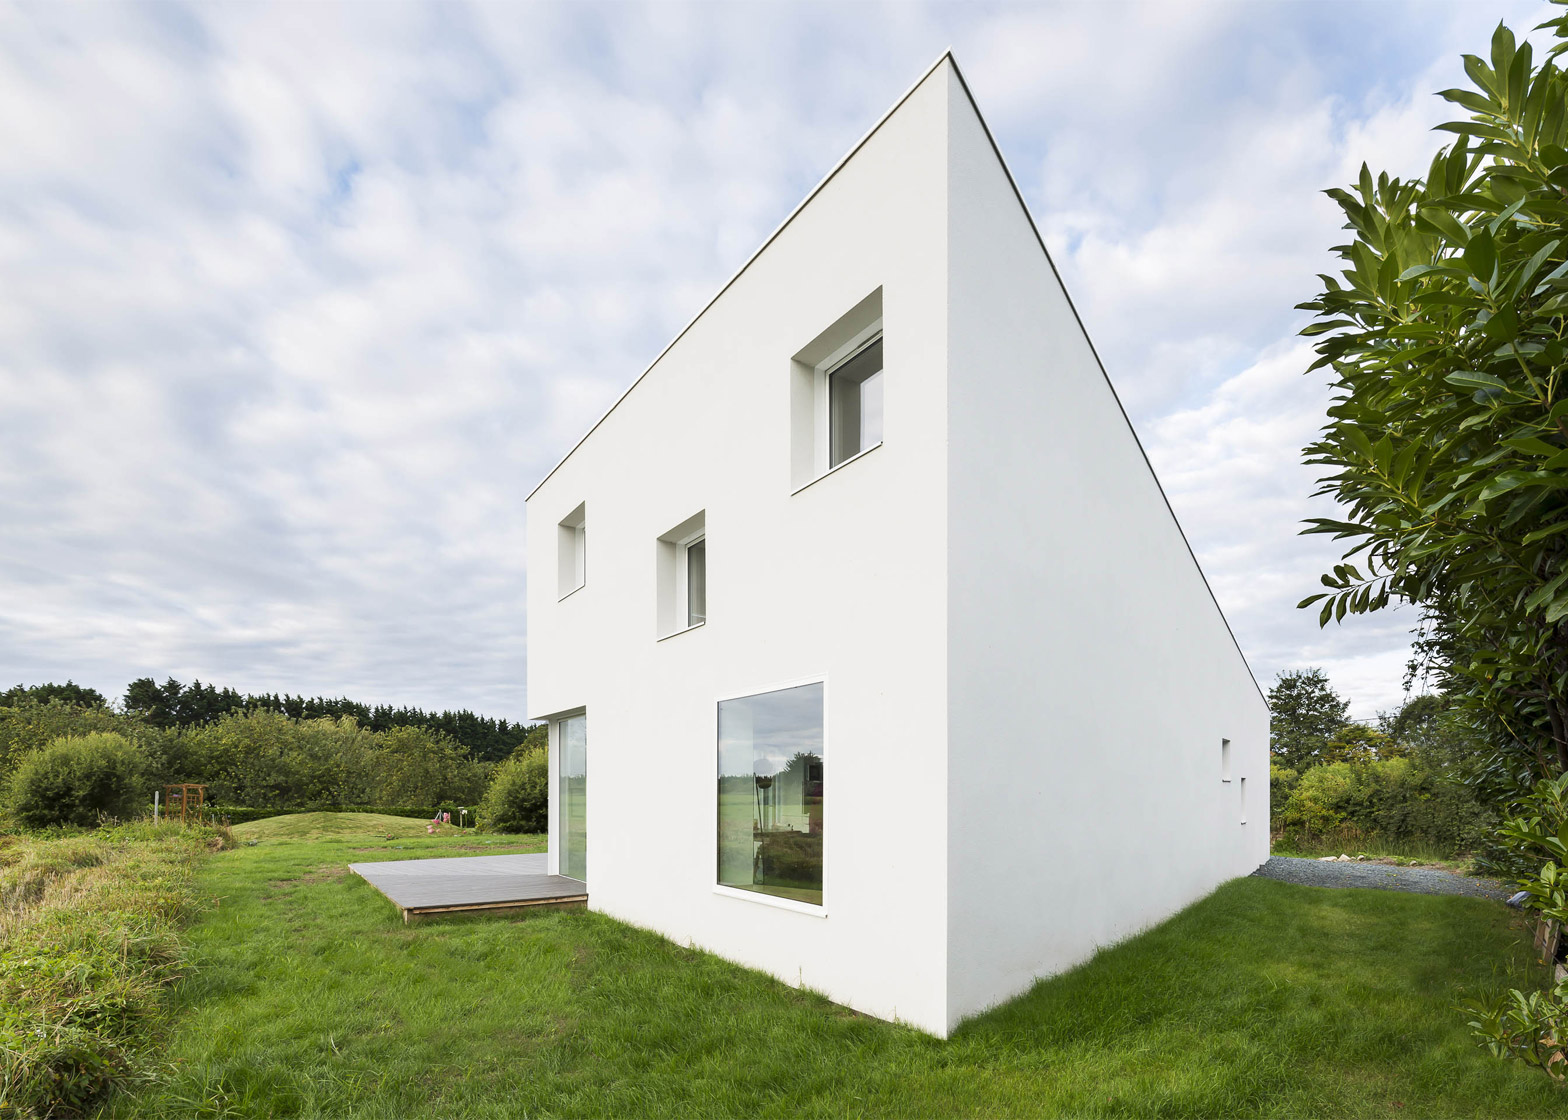 House for a Photographer by Studio Razavi